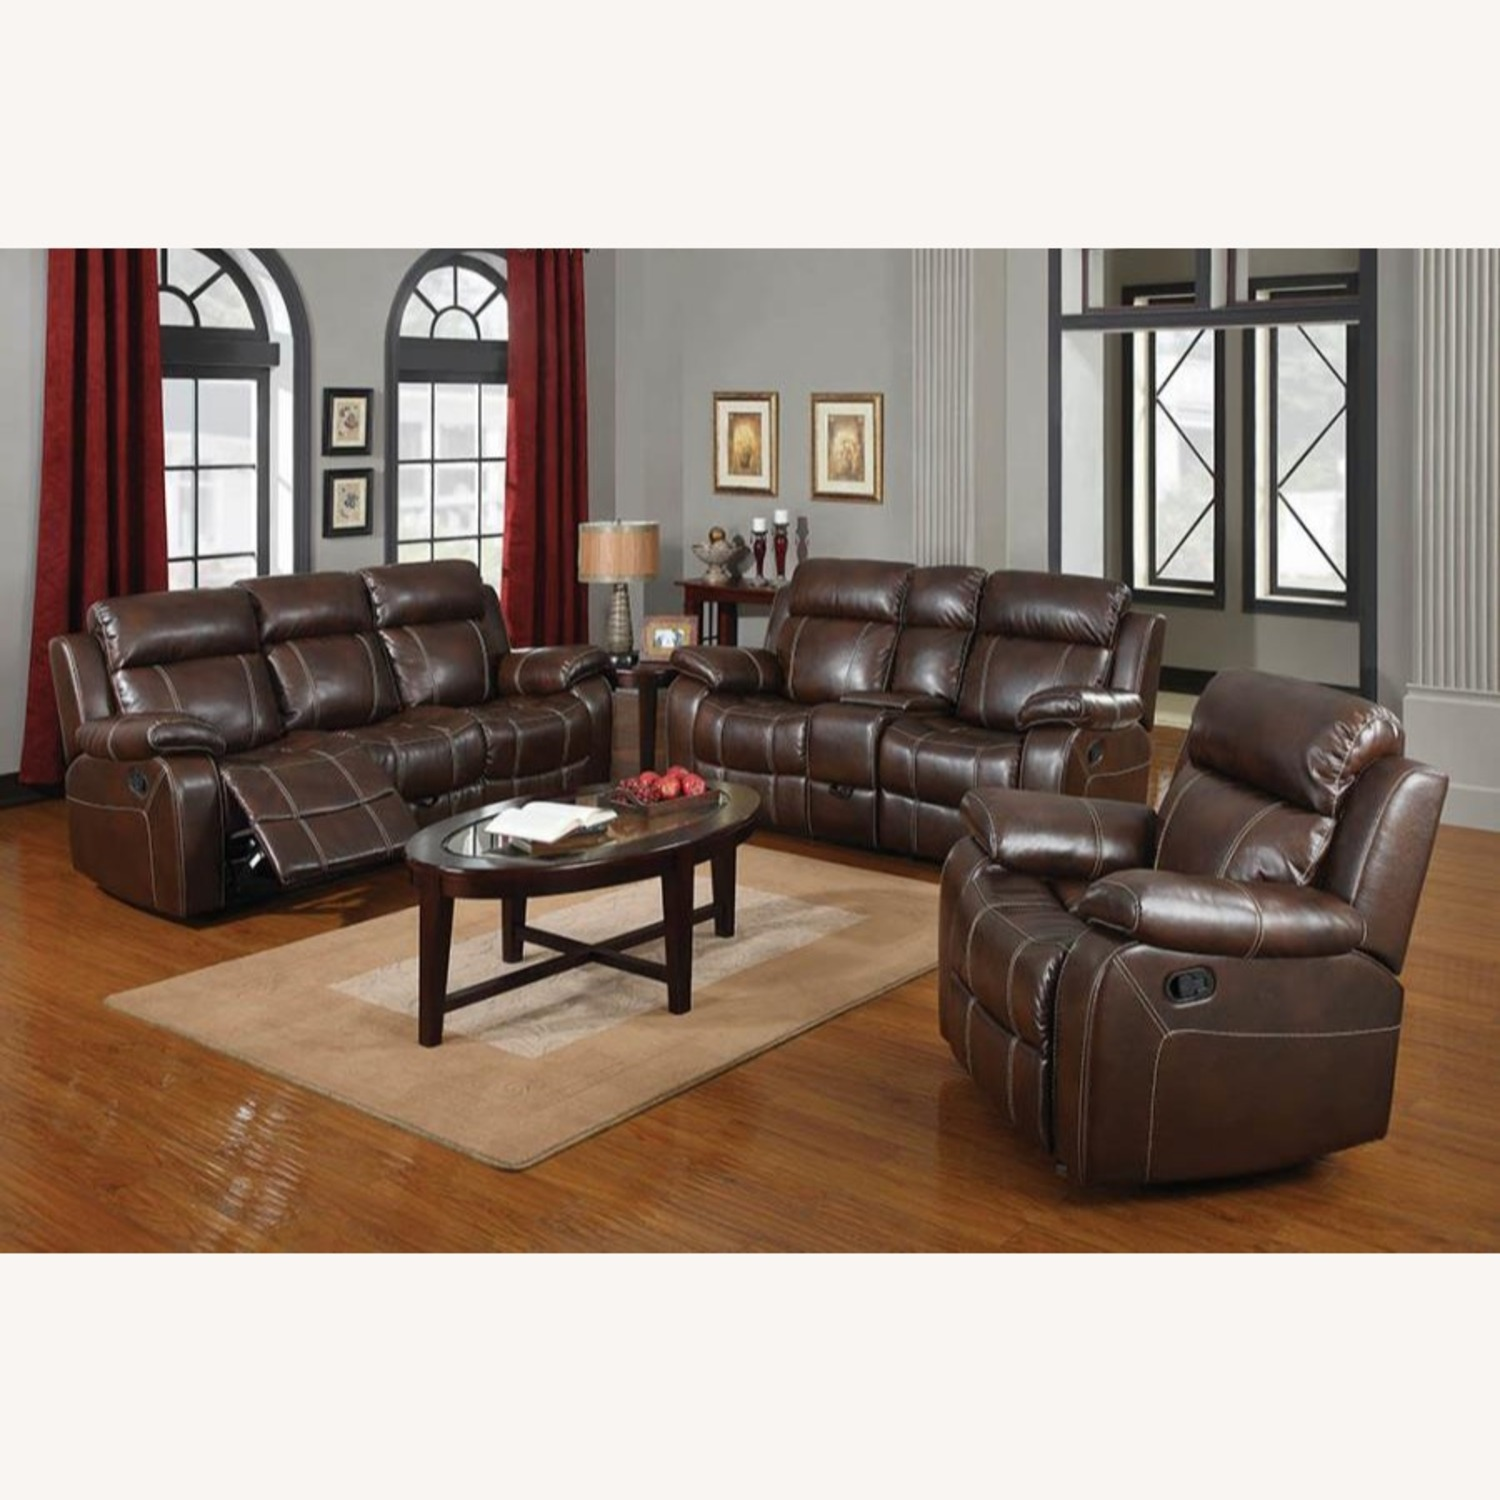 Motion Sofa In Chestnut Leather W/ Storage Drawer - image-7